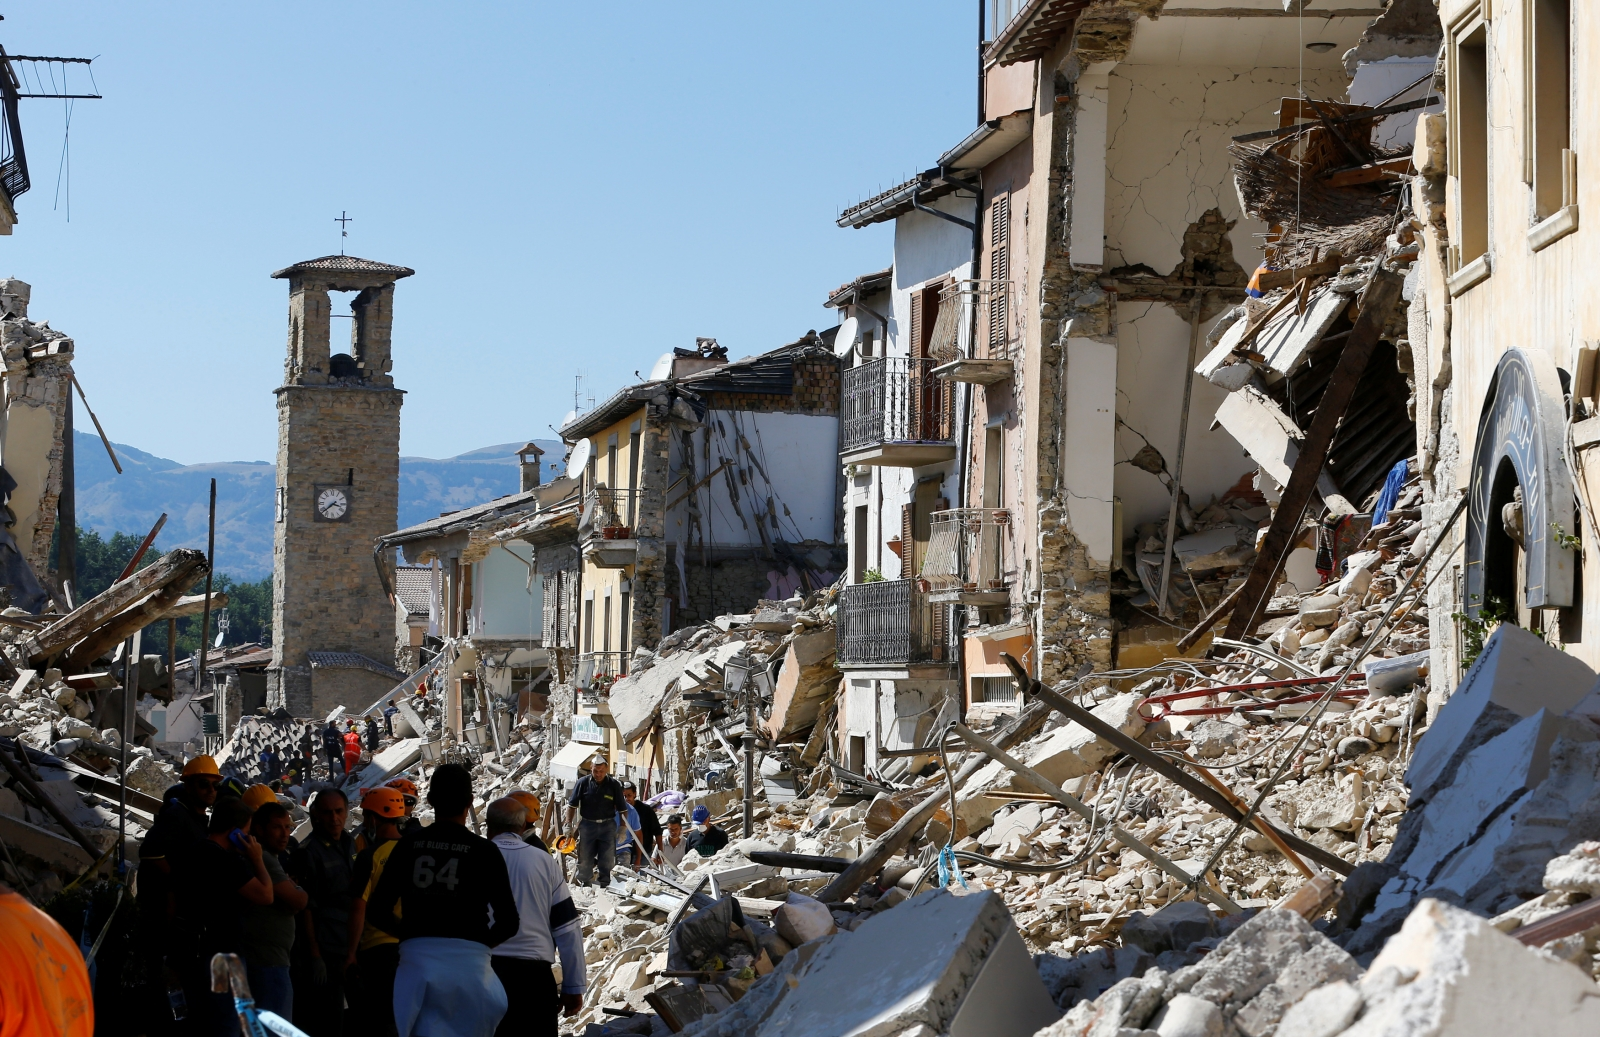 Strong Earthquake hits the Central Italy | This is Italy |Italian Earthquake